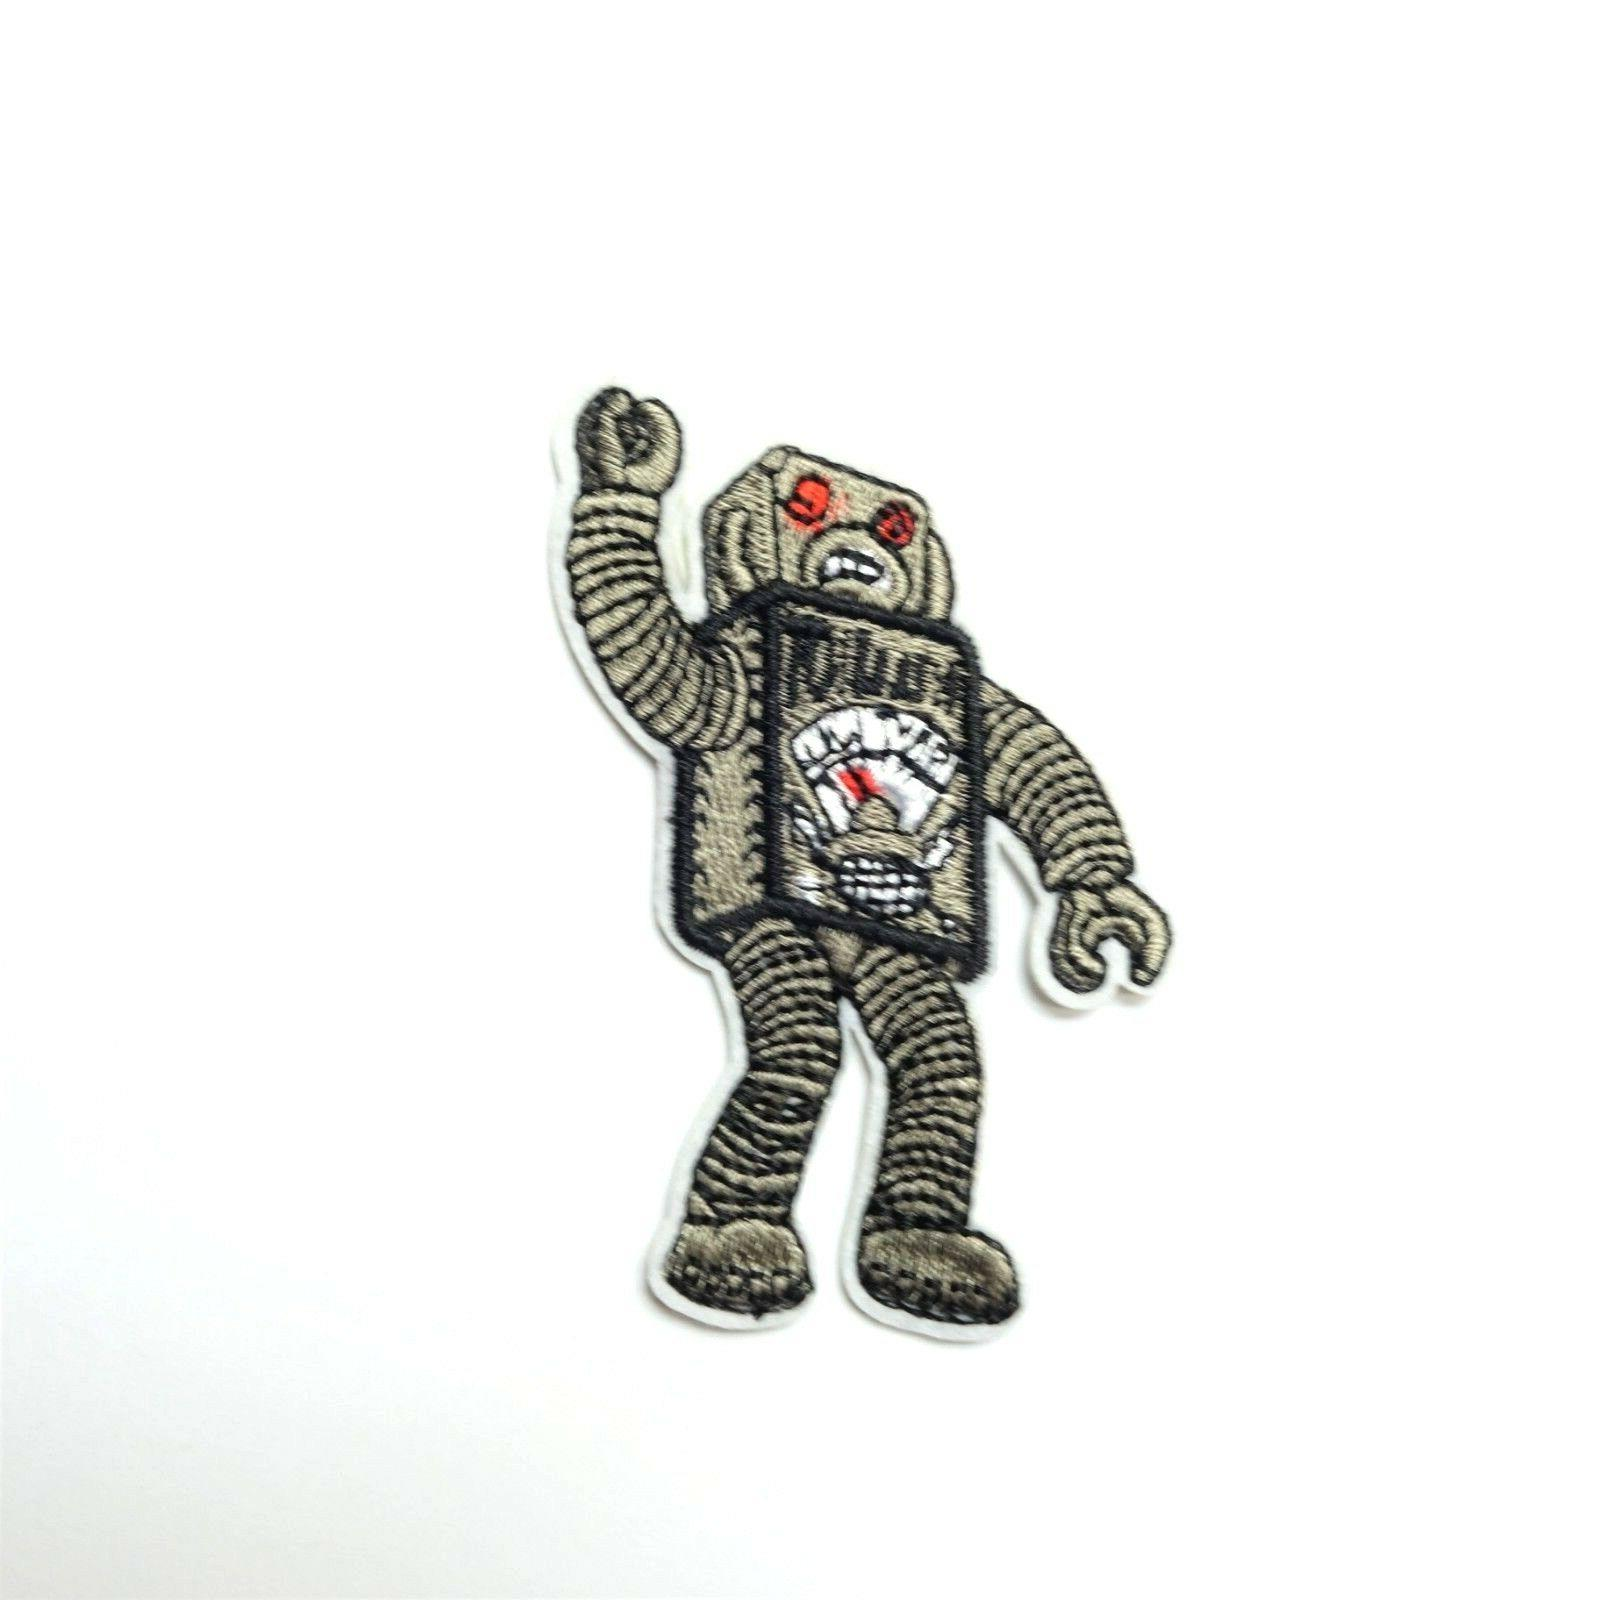 attack robot patch iron on sew on